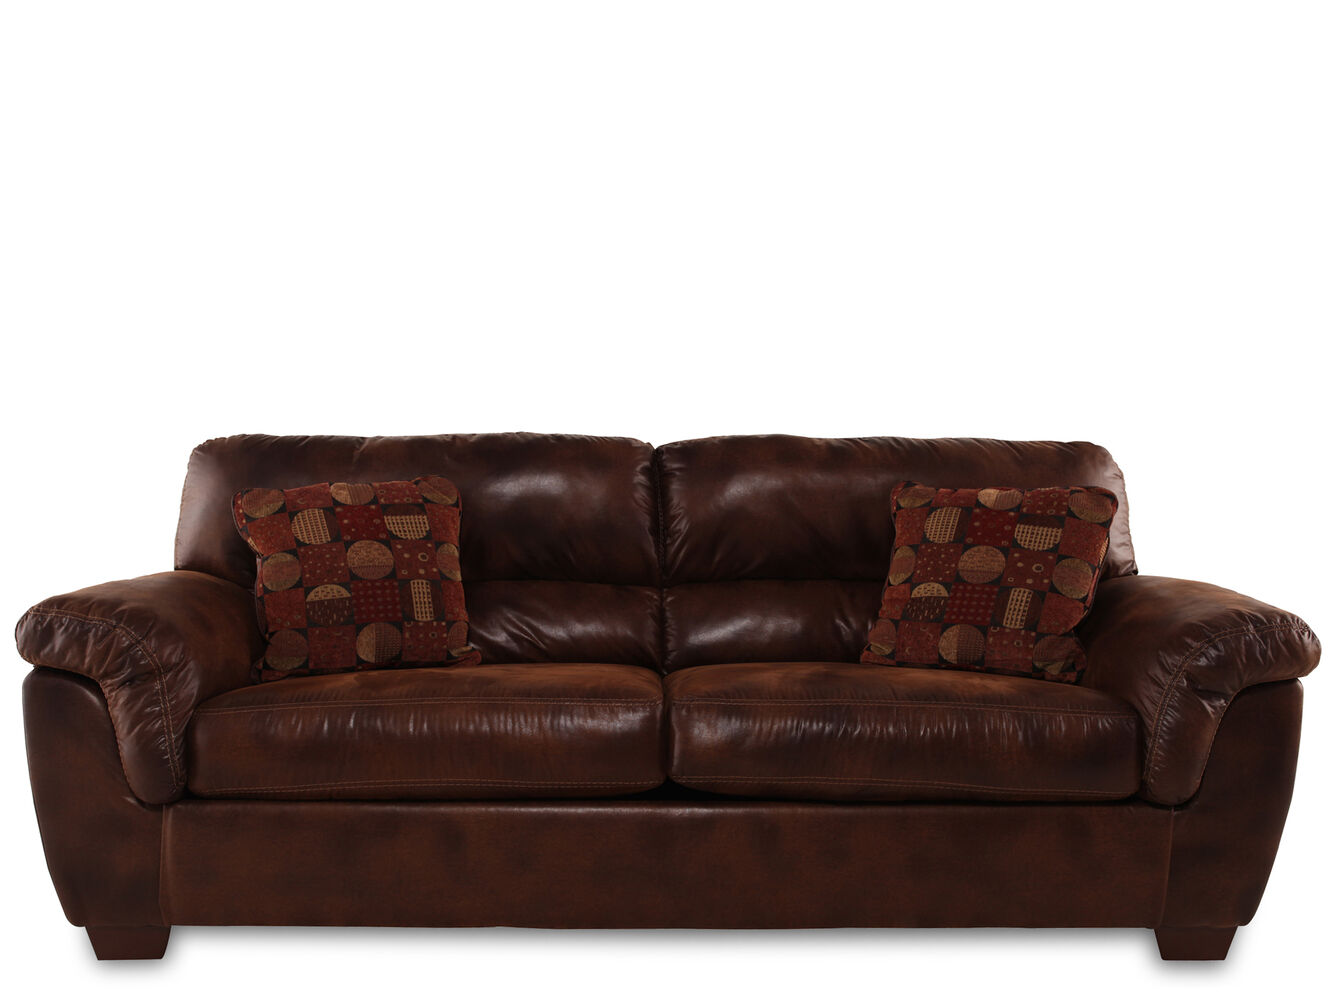 Casual 94 sofa in brown mathis brothers furniture for Casual couch